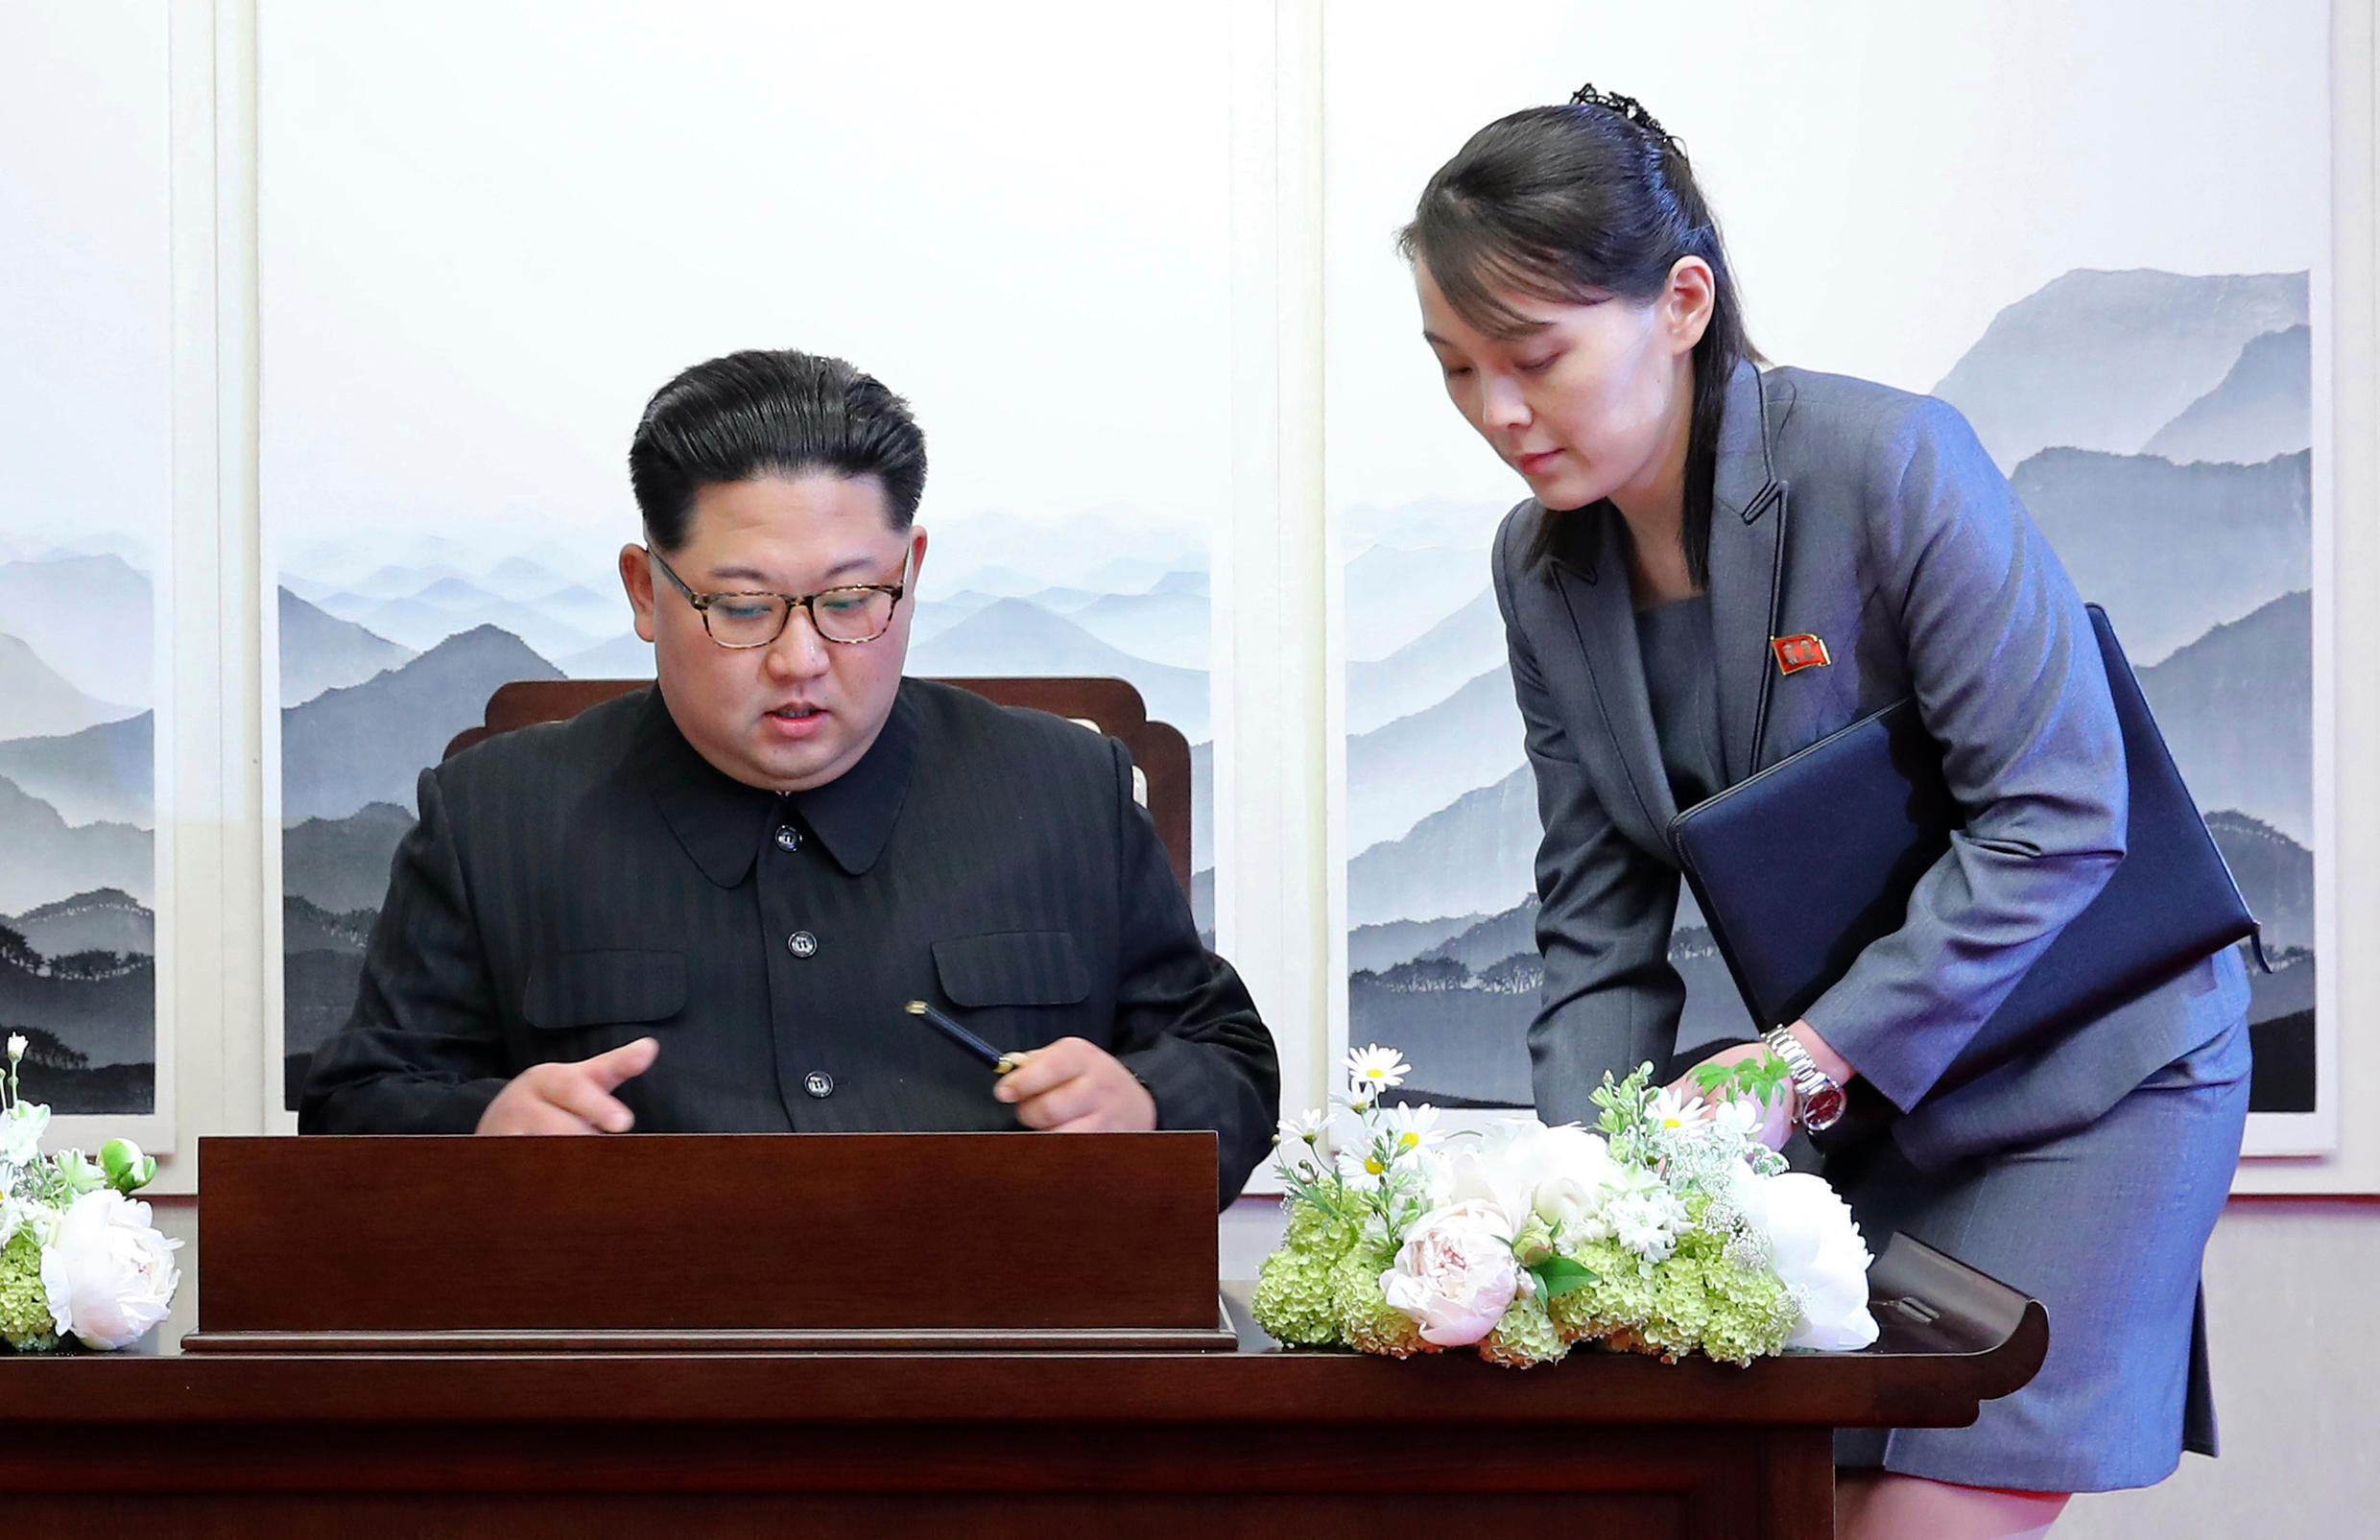 In this April 27, 2018, file photo, North Korean leader Kim Jong Un signs a guestbook next to his sister Kim Yo Jong, right, inside the Peace House at the border village of Panmunjom in Demilitarized Zone. With North Korea saying nothing so far about outside media reports that leader Kim Jong Un may be unwell, there's renewed worry about who's next in line to run a nuclear-armed country that's been ruled by the same family for seven decades.